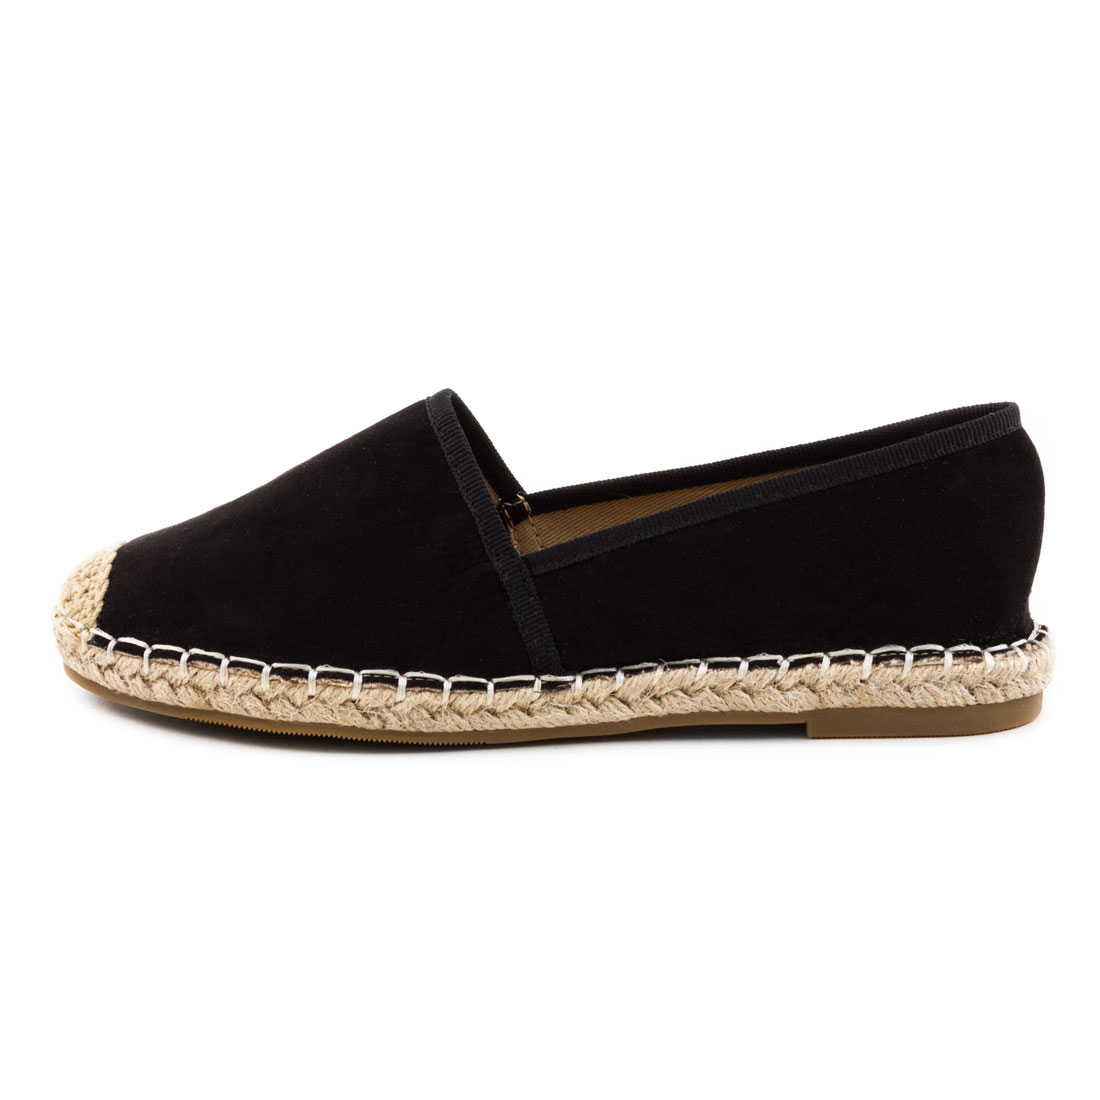 neu damen sommer espadrilles slipper halbschuhe bast. Black Bedroom Furniture Sets. Home Design Ideas